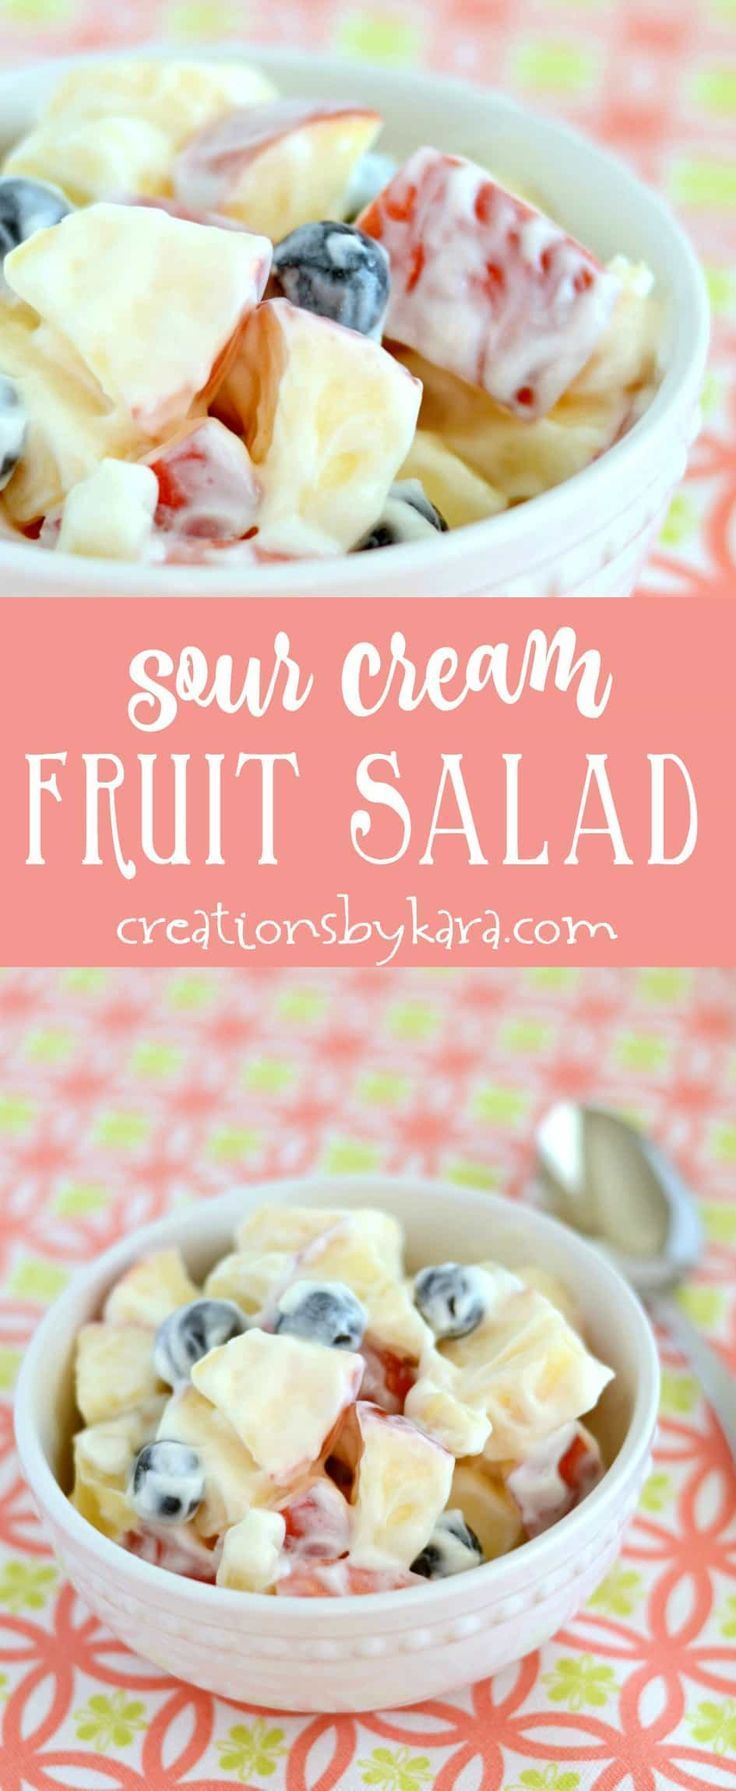 Easy and delicious, this Sour Cream Fruit Salad is always a hit. A tasty fruit s Easy and delicious, this Sour Cream Fruit Salad is always a hit. A tasty fruit s...